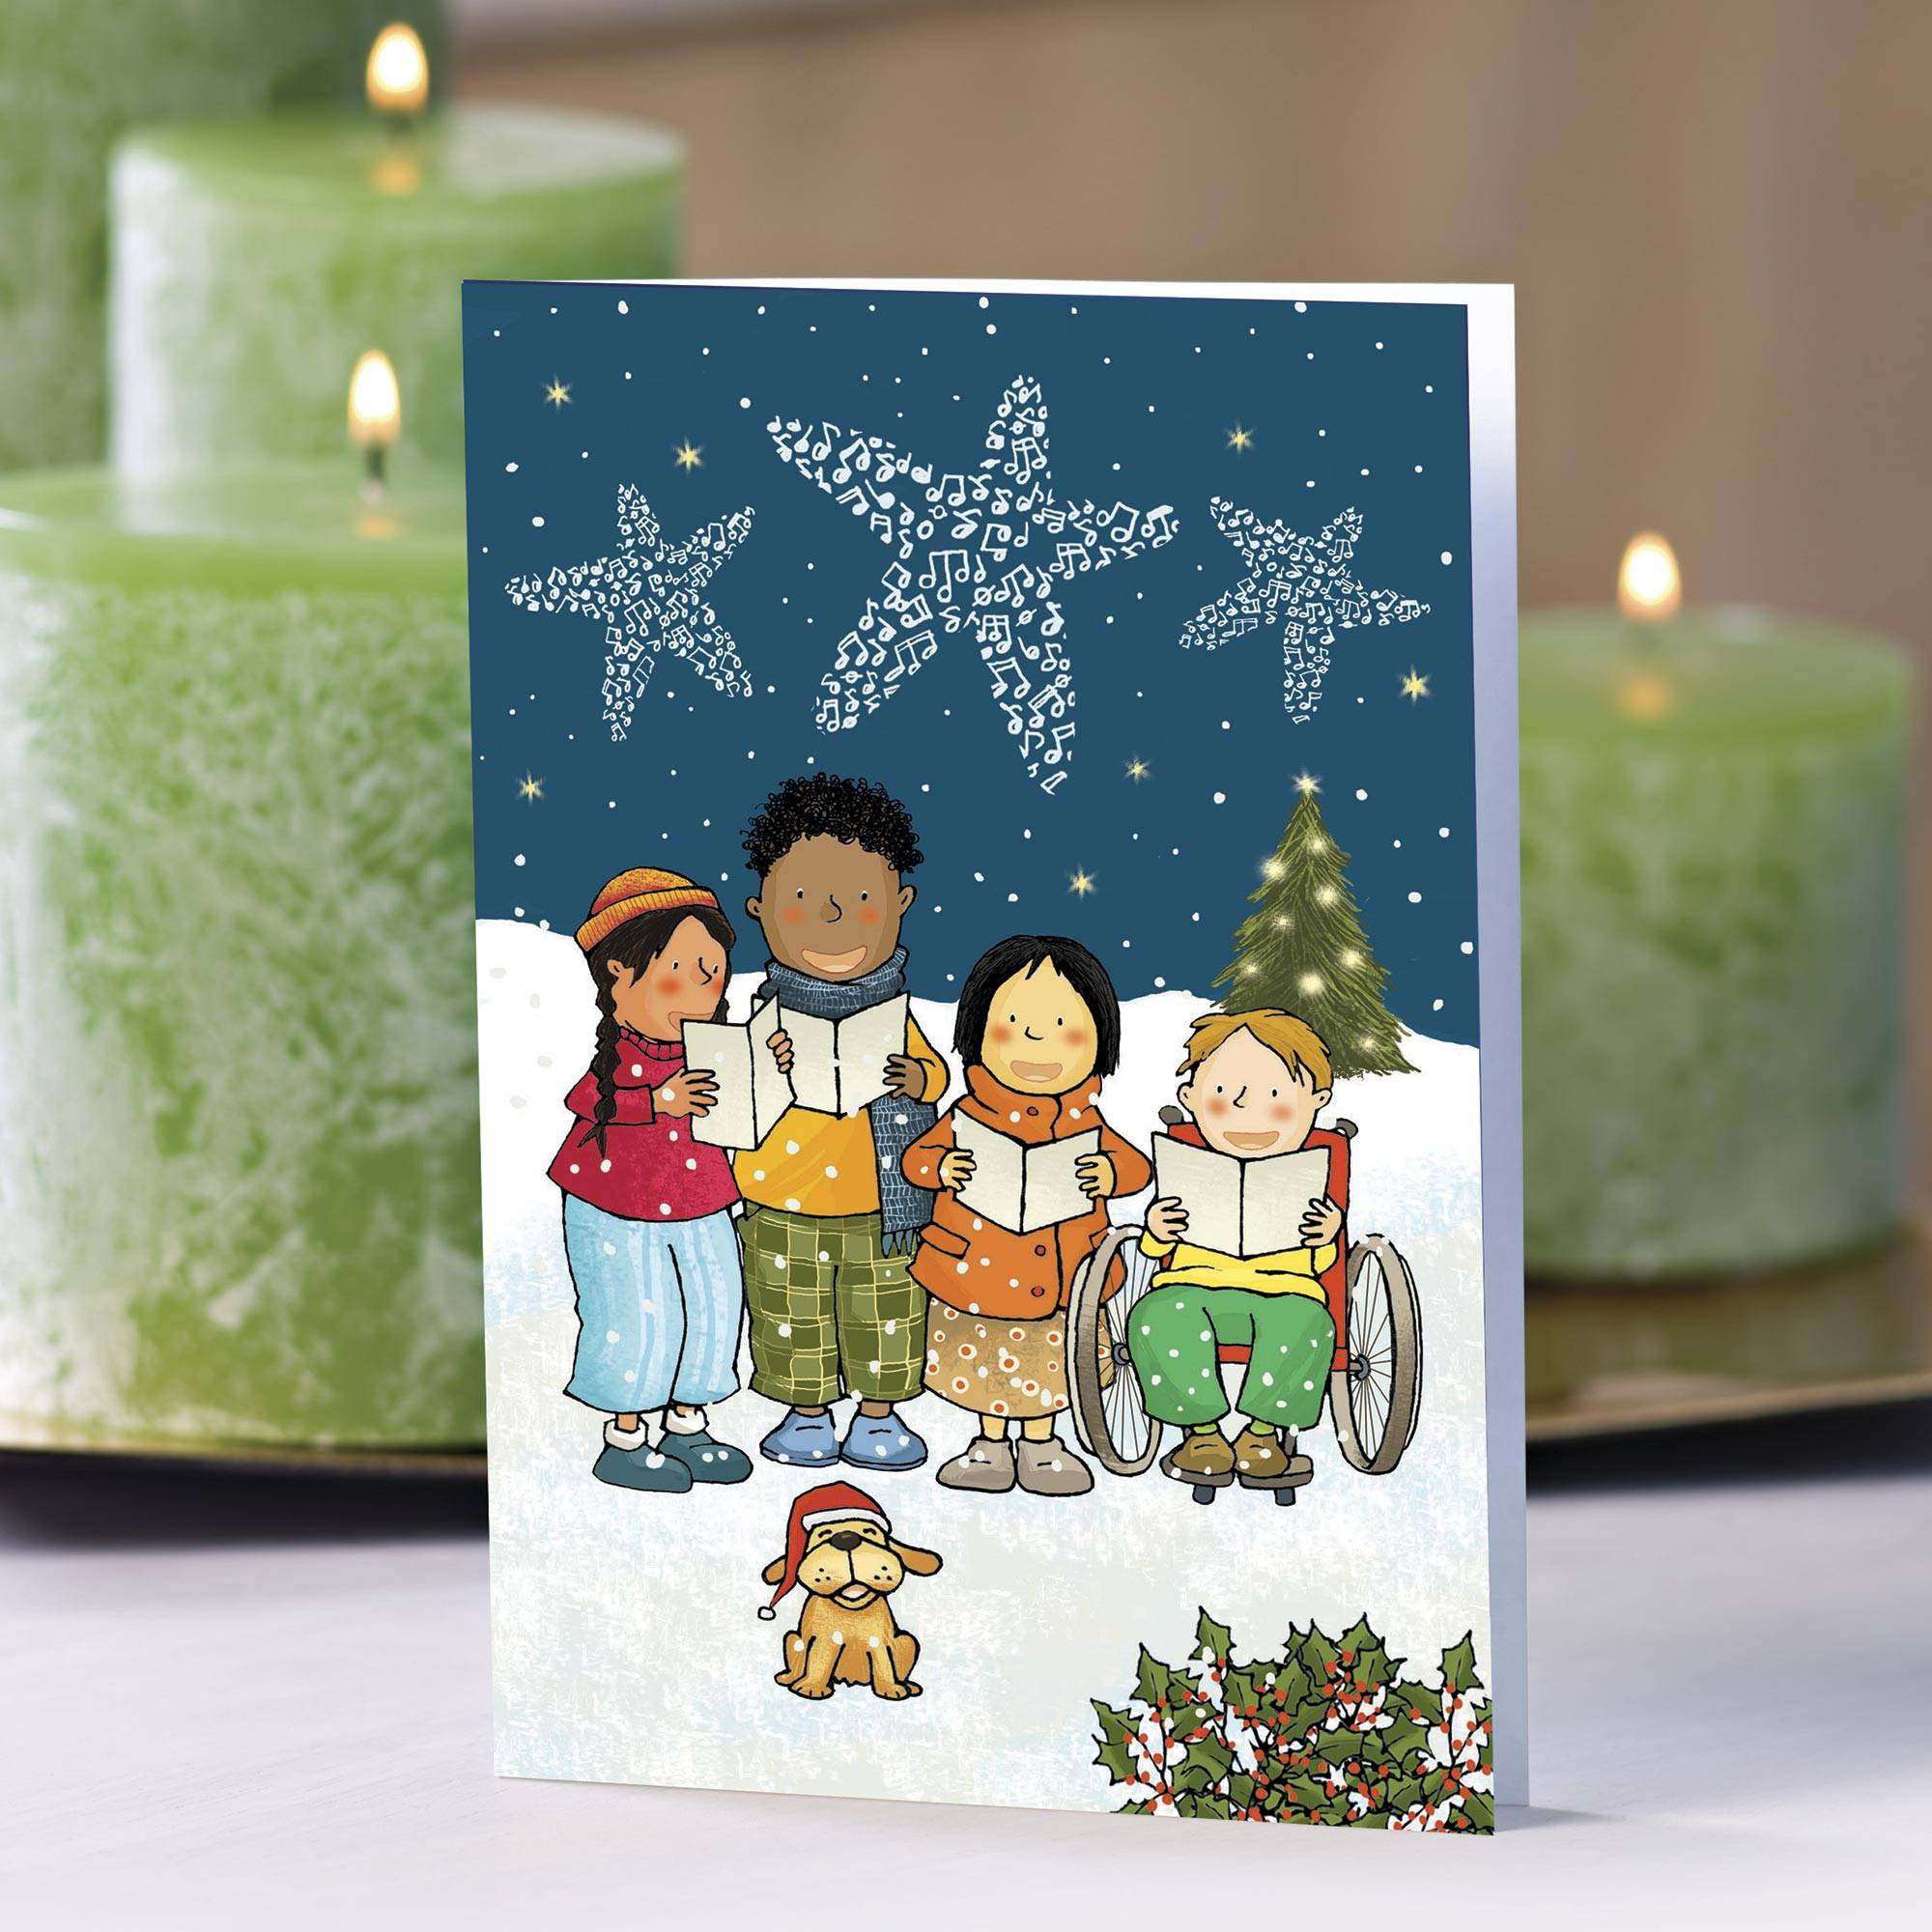 Unicef Christmas Cards.Unicef Caroling Children Holiday Cards Set Of 10 We Wish You A Merry Christmas